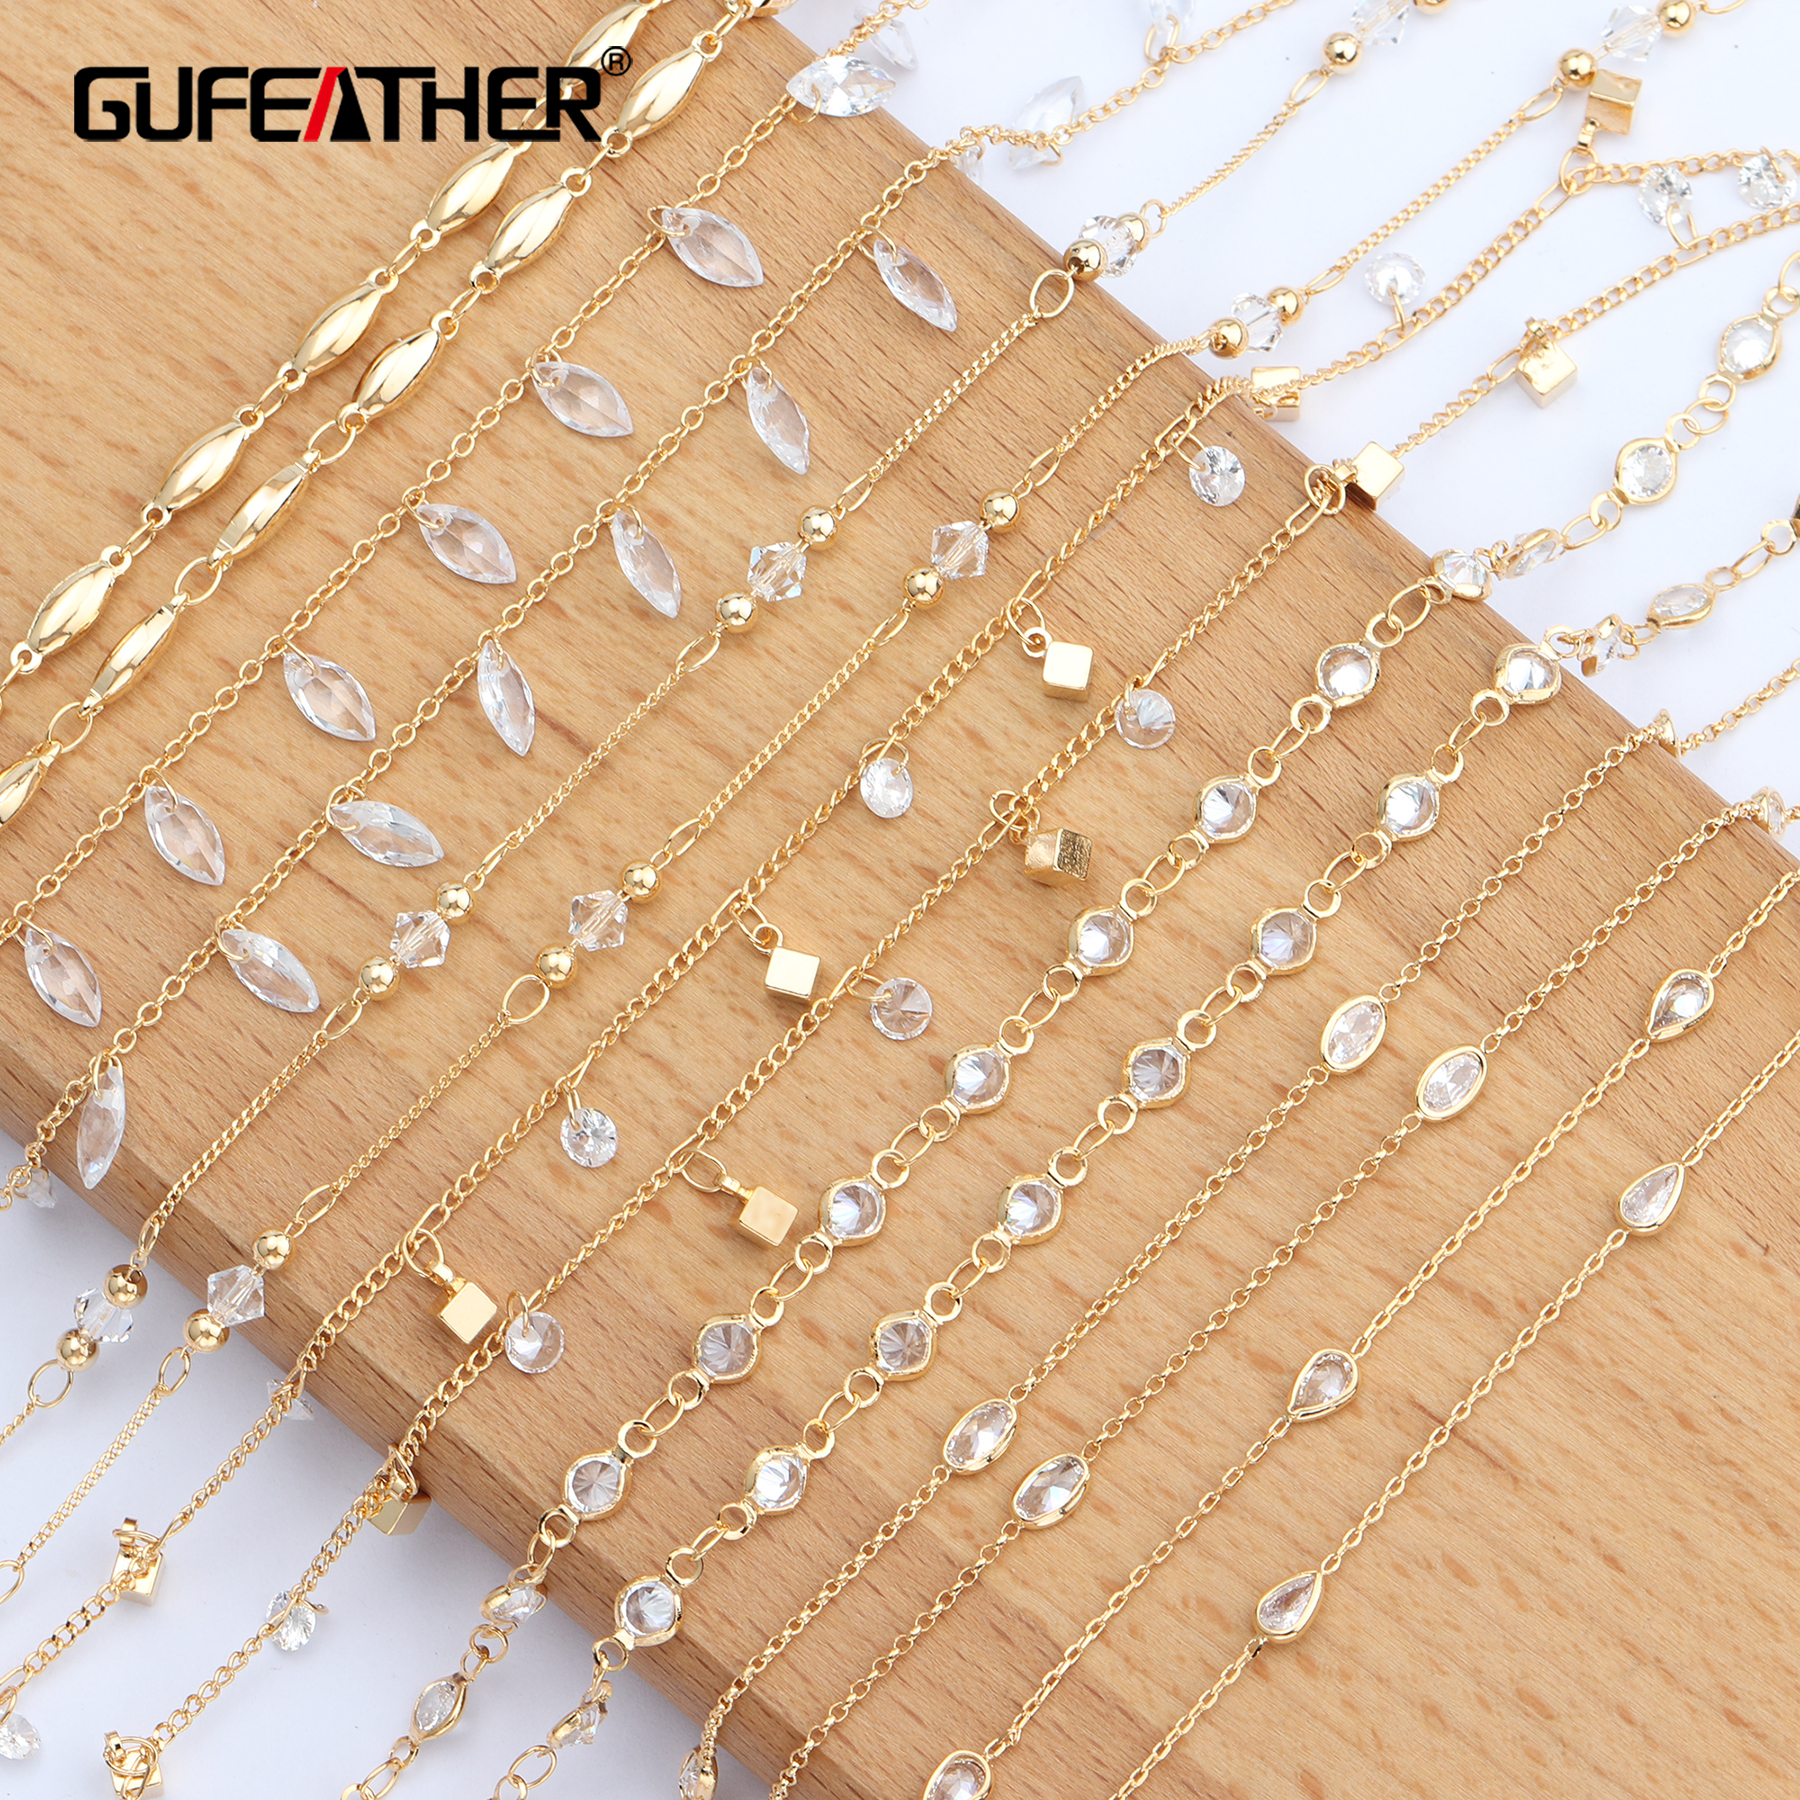 GUFEATHER C62,jewelry Accessories,18k Gold Plated,copper Chain,environmental Protection,diy Chain Necklace,jewelry Making,1m/lot